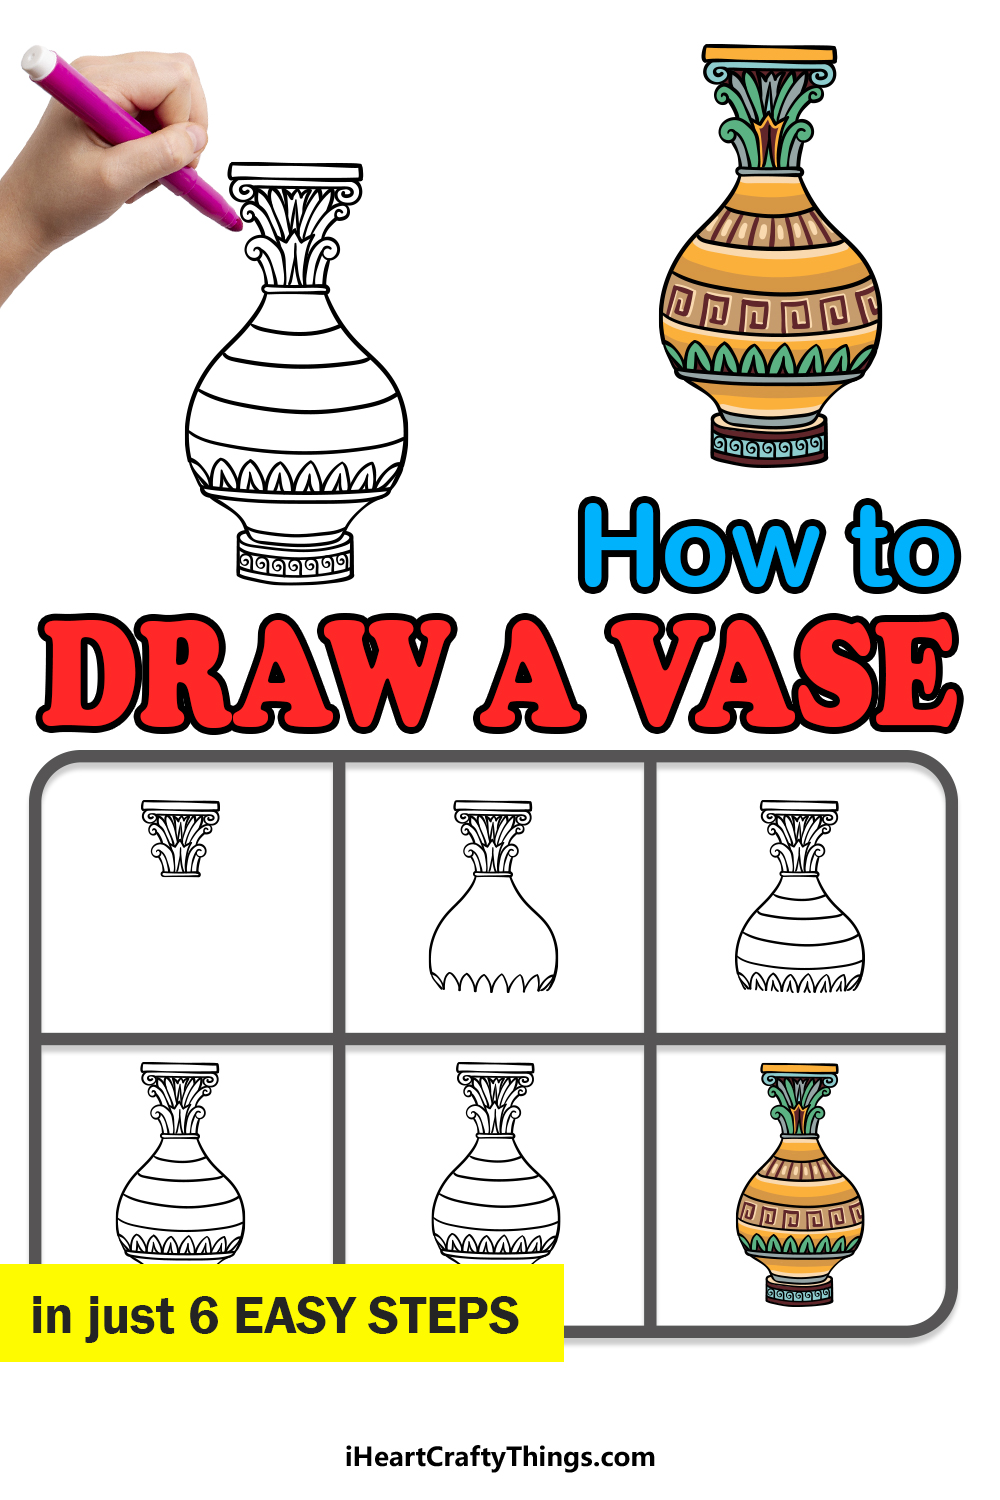 how to draw a vase in 6 easy steps